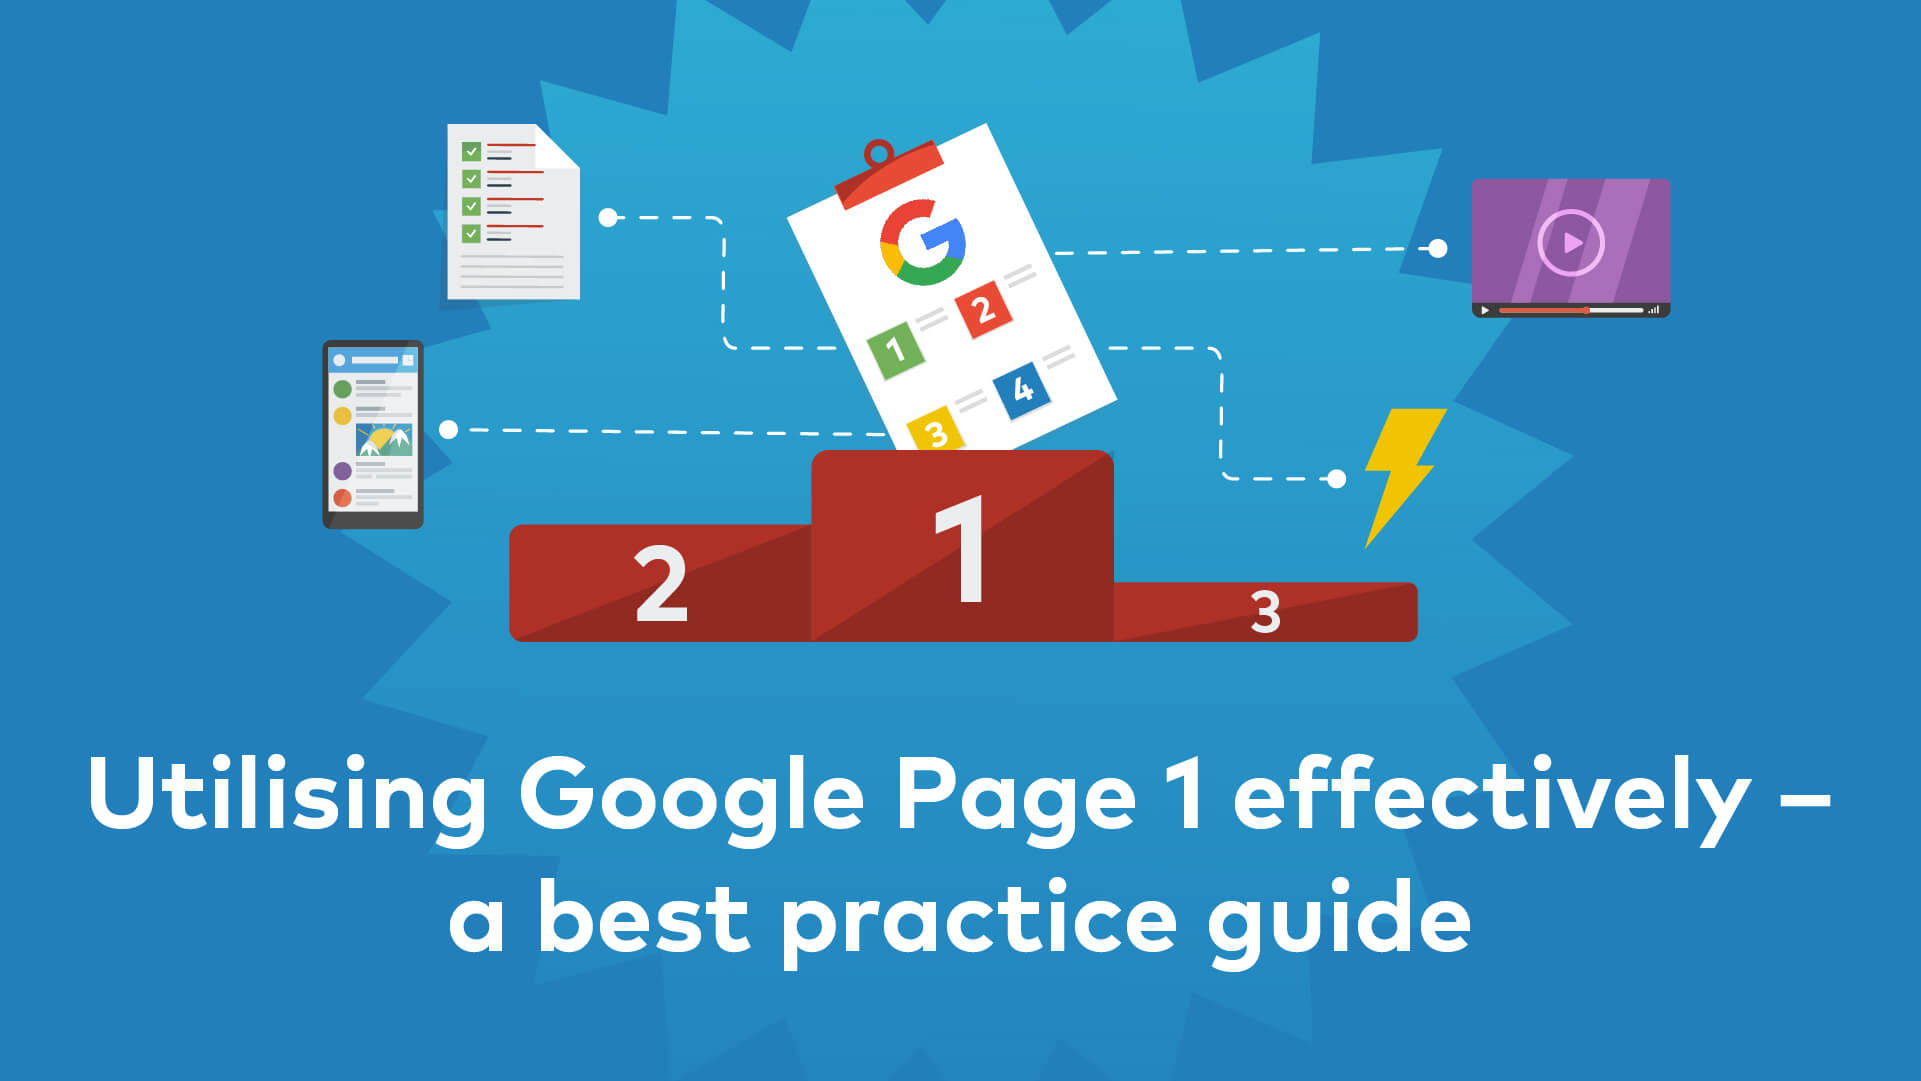 Cover image for post: Best Practice Guide to Improving Google Page 1